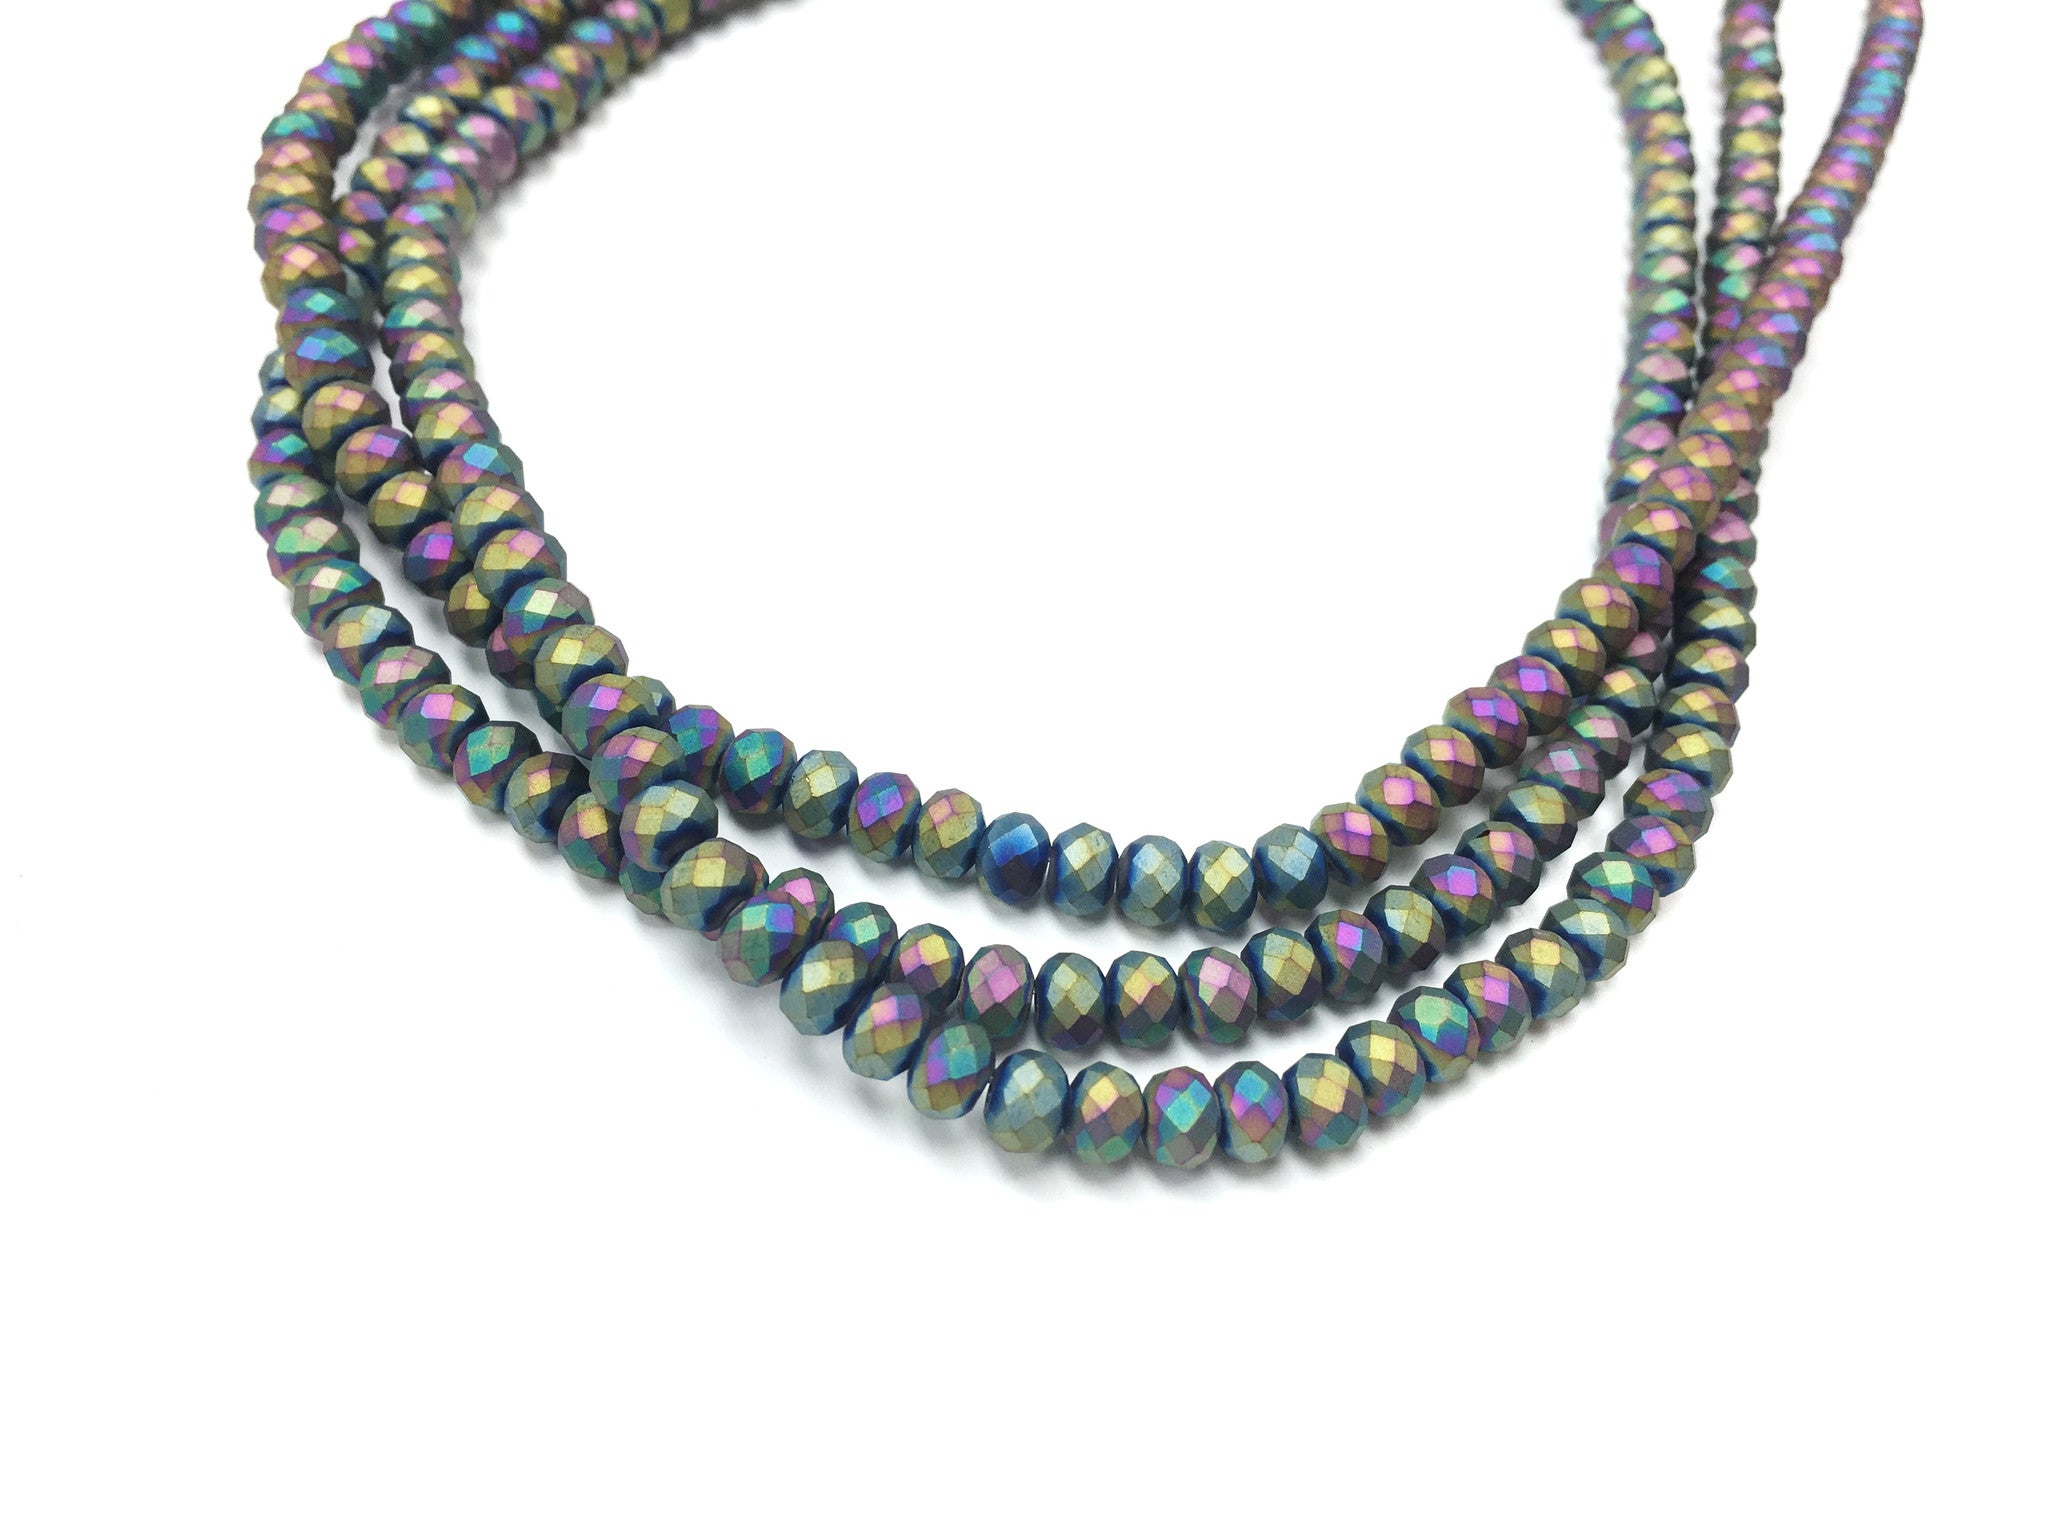 A&SB Crystal Rondells - 4x6mm Matte Rainbow Faceted Rondelle Beads - 16 inch st